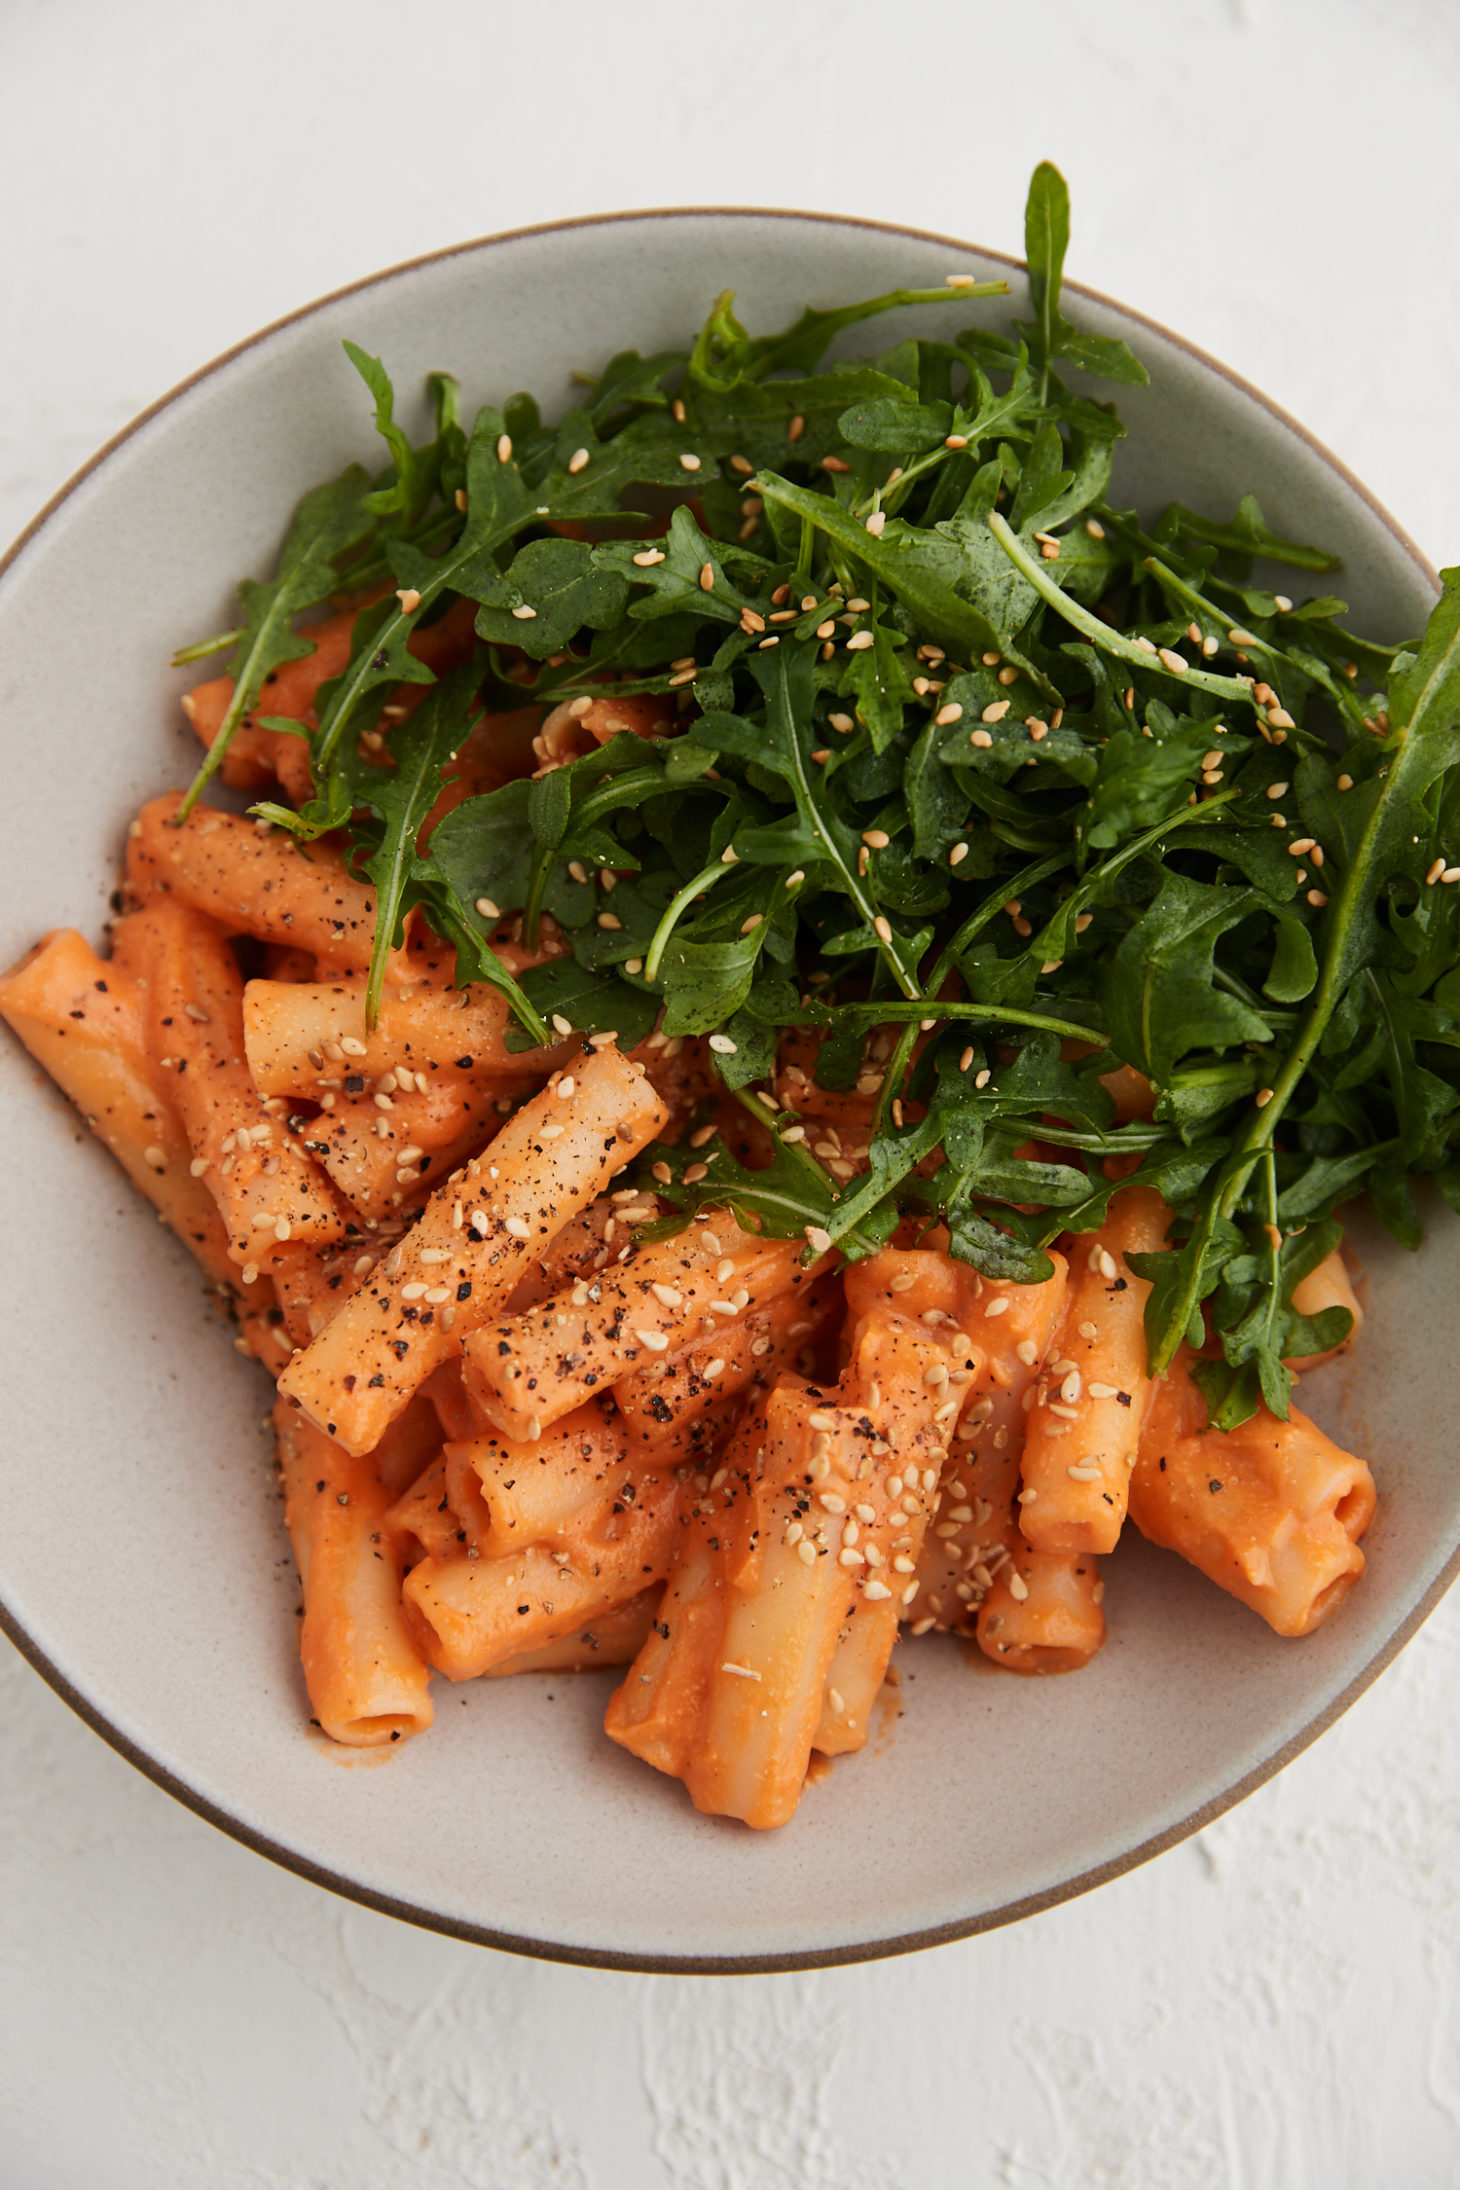 Close-up image of pasta topped in a carrot sauce and arugula.